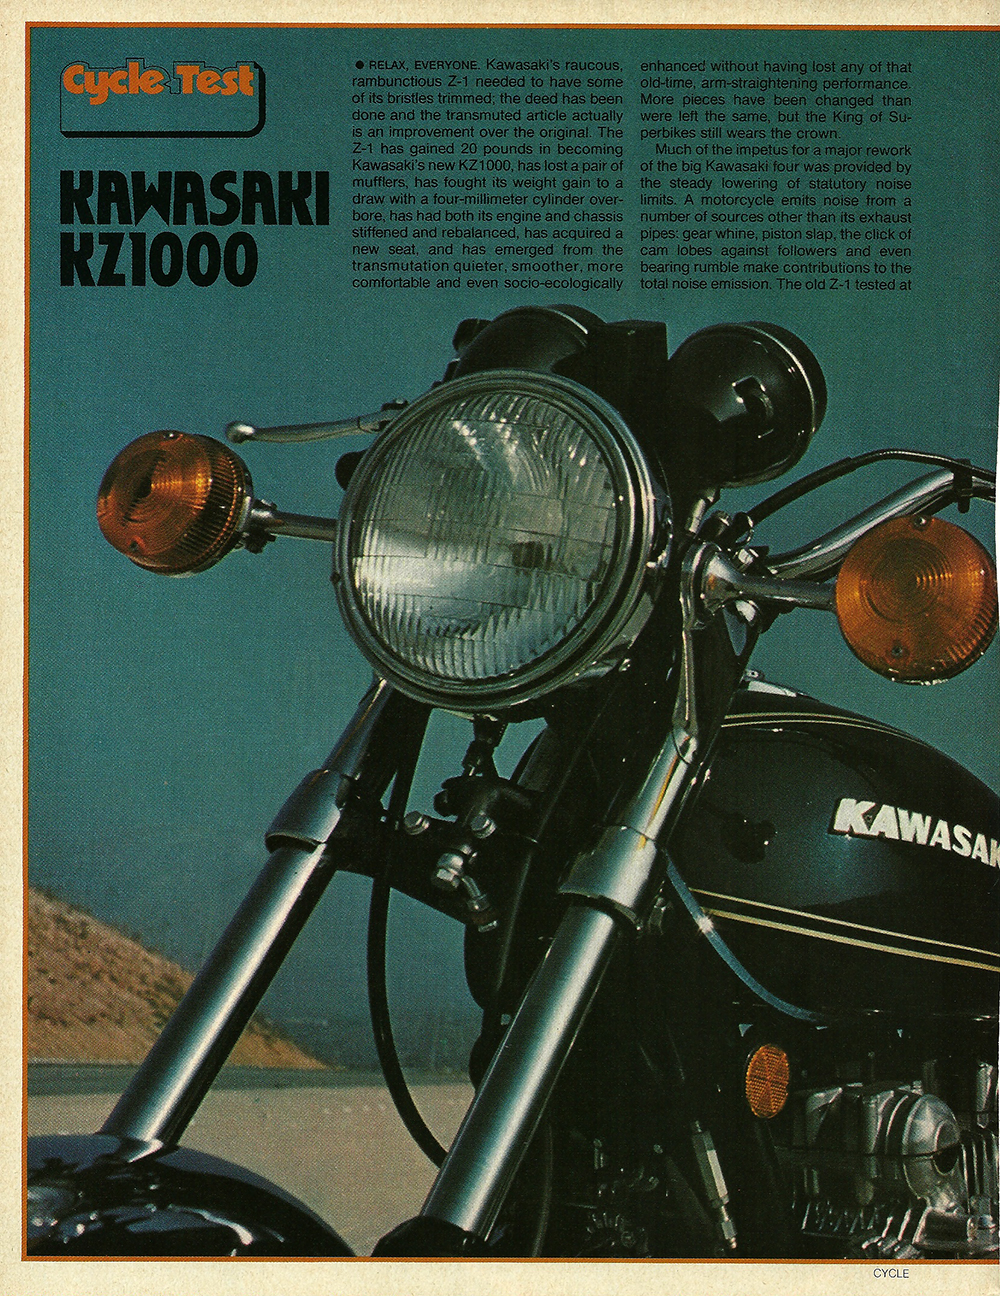 1977 Kawasaki KZ1000 road test 1.jpg